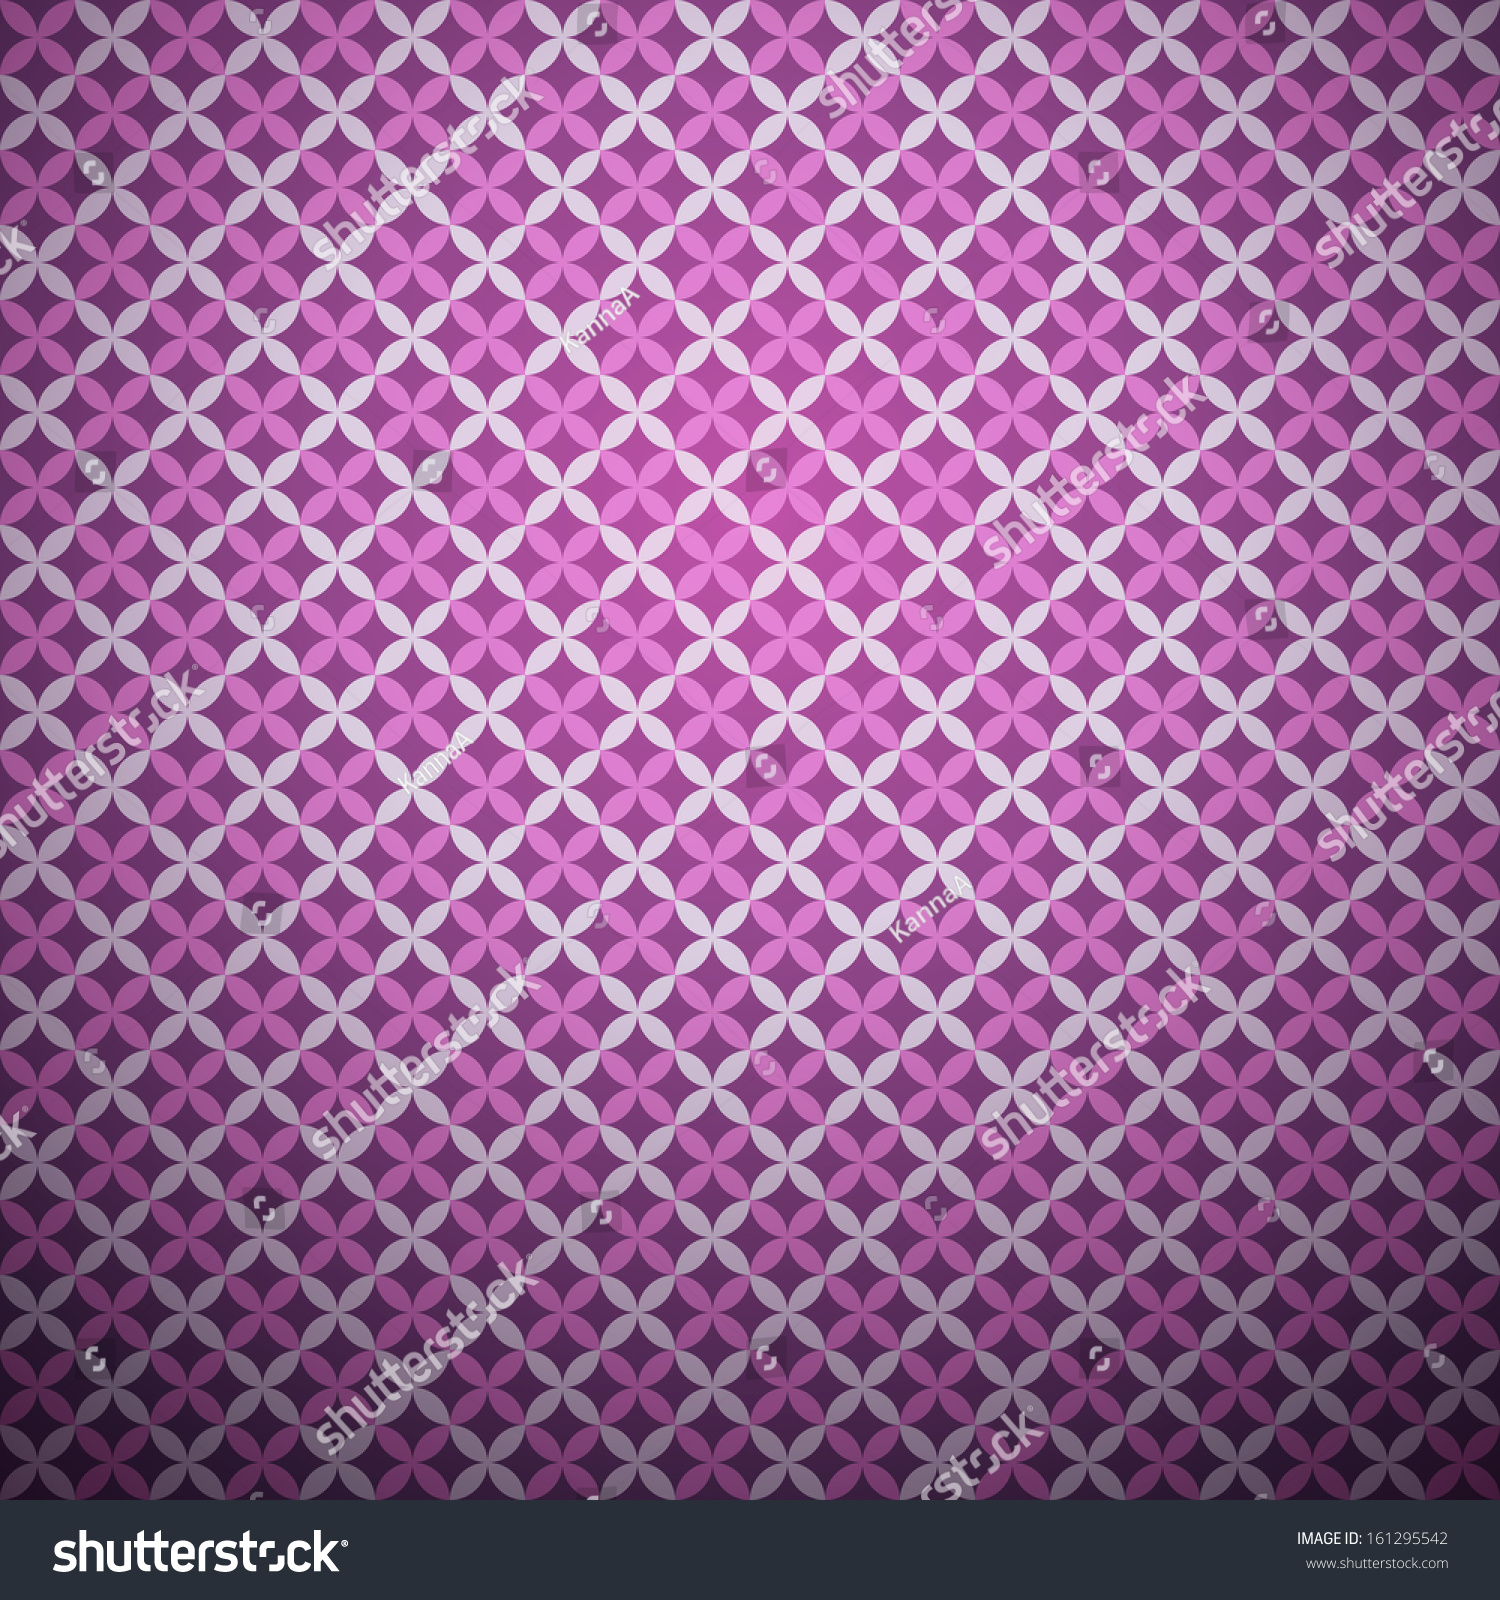 Lavender pattern background